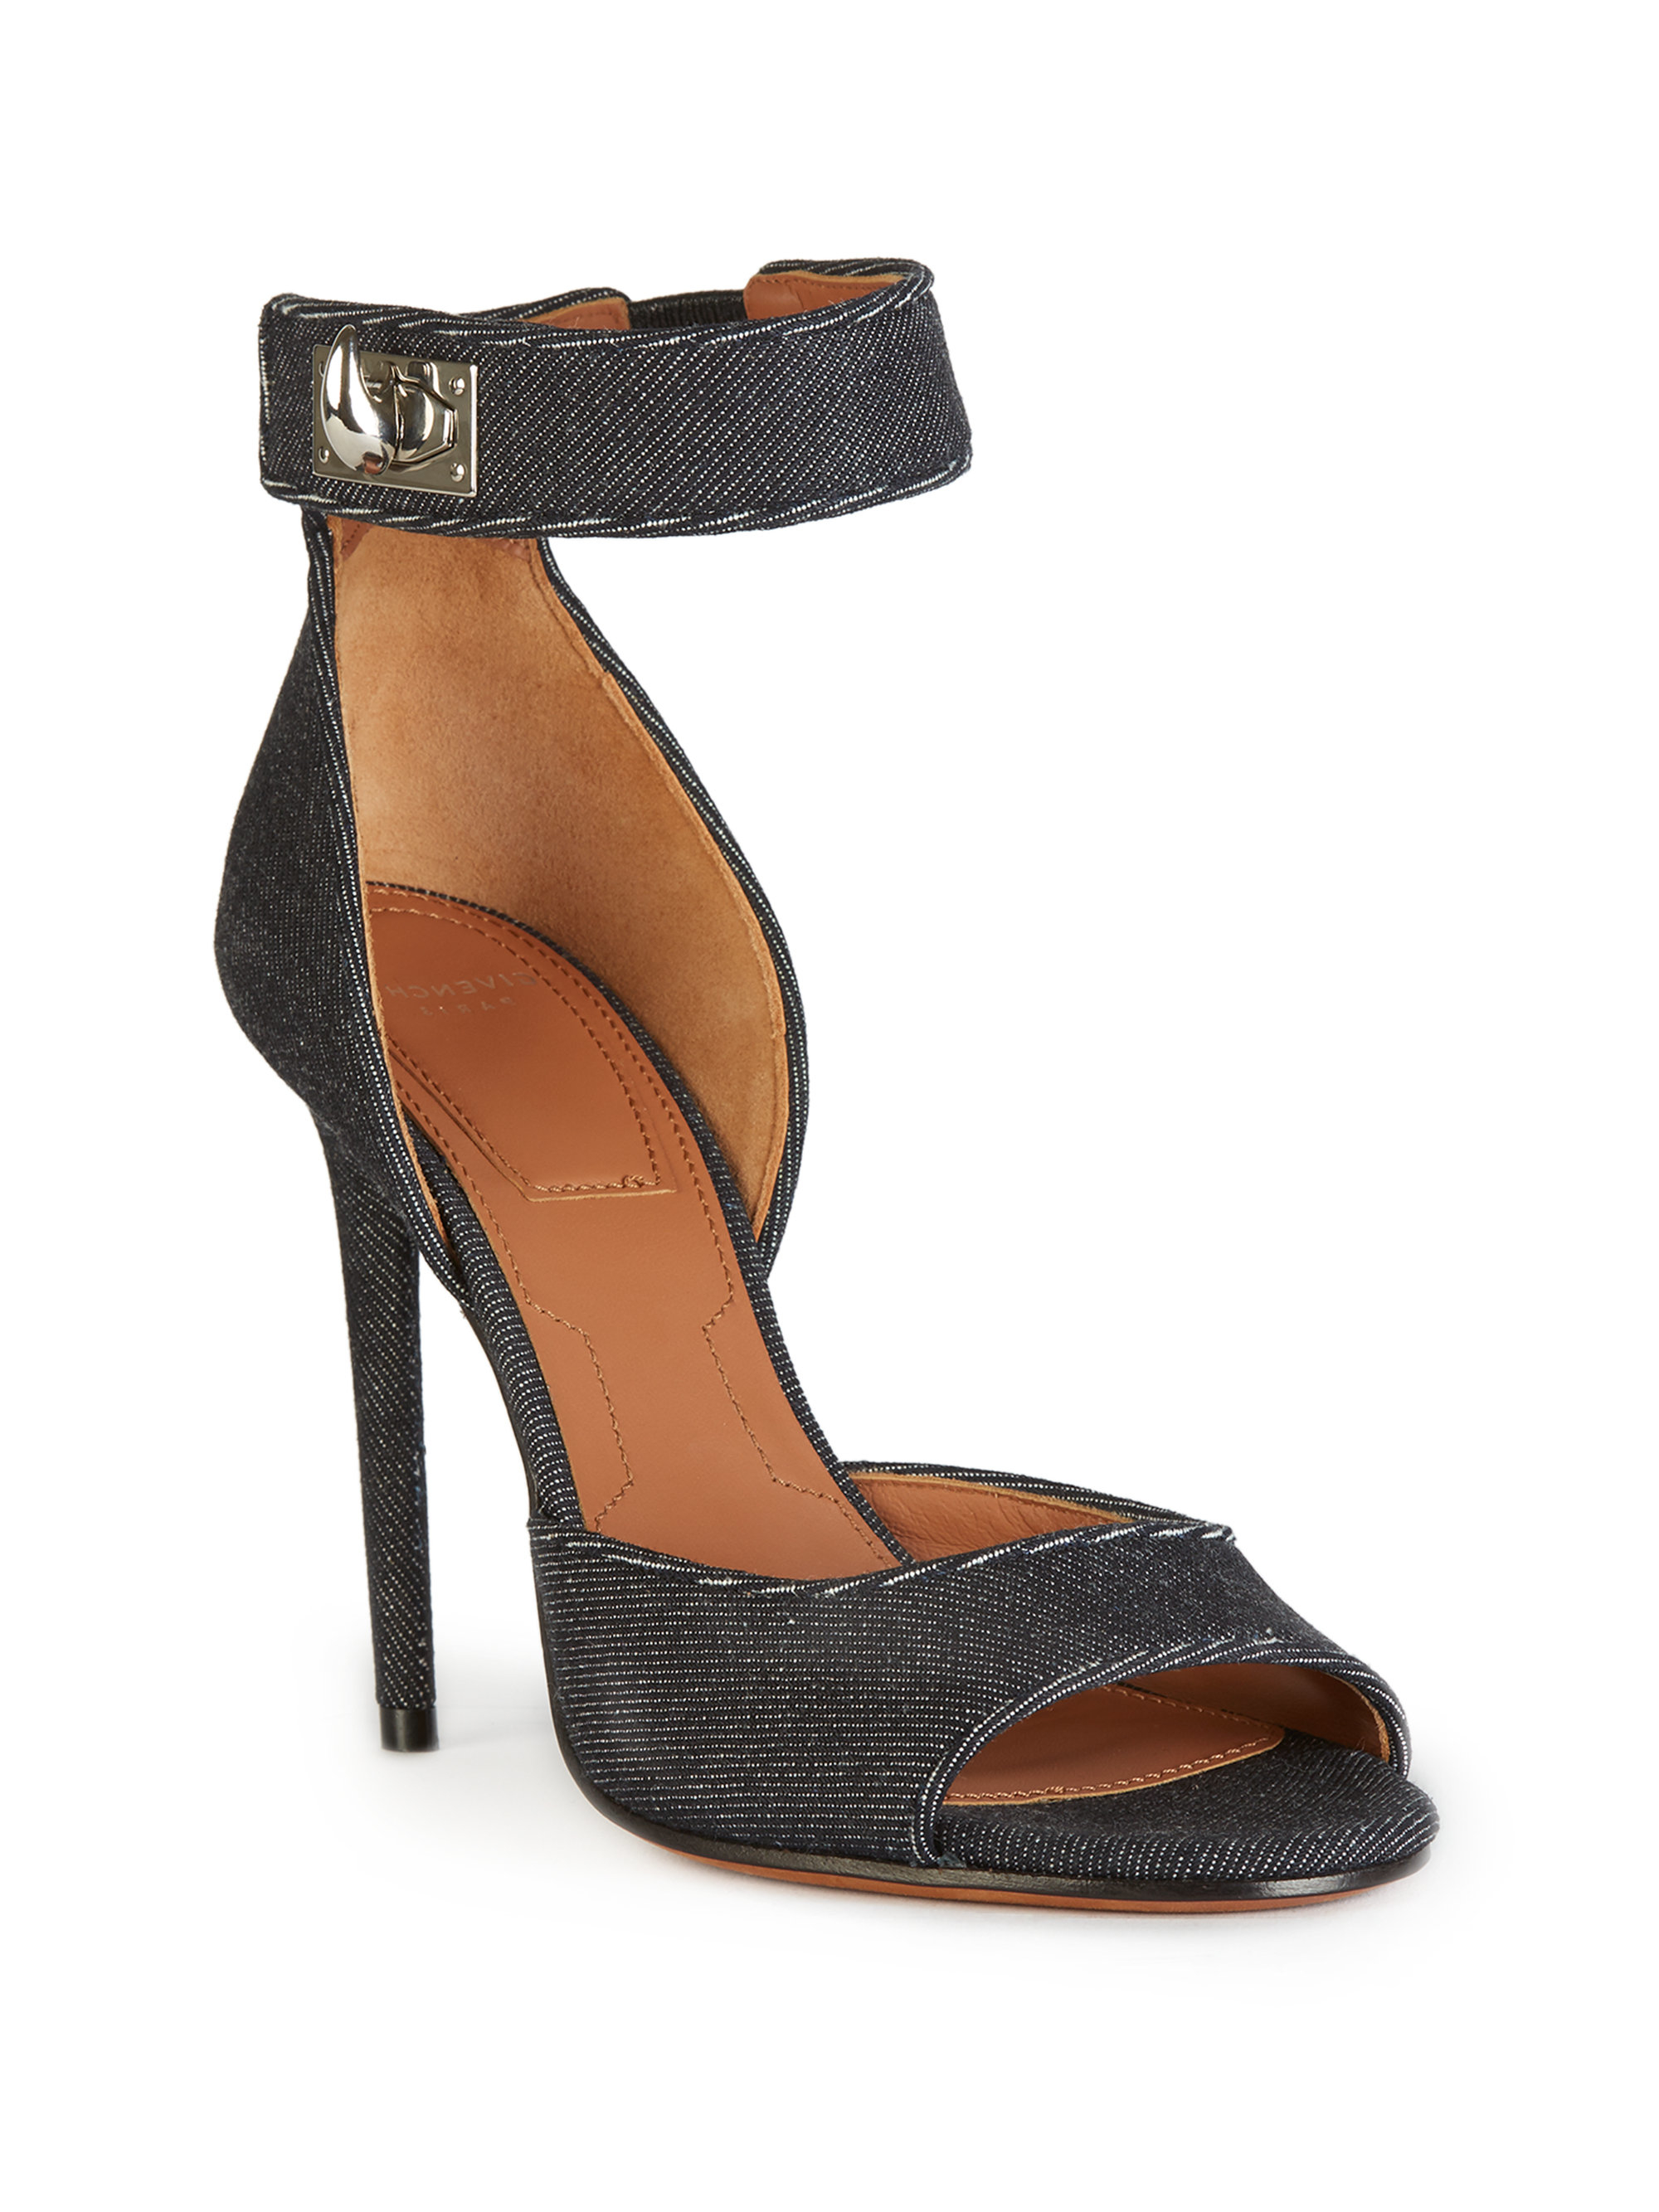 7f822ee02013 Givenchy Ladies Sandals